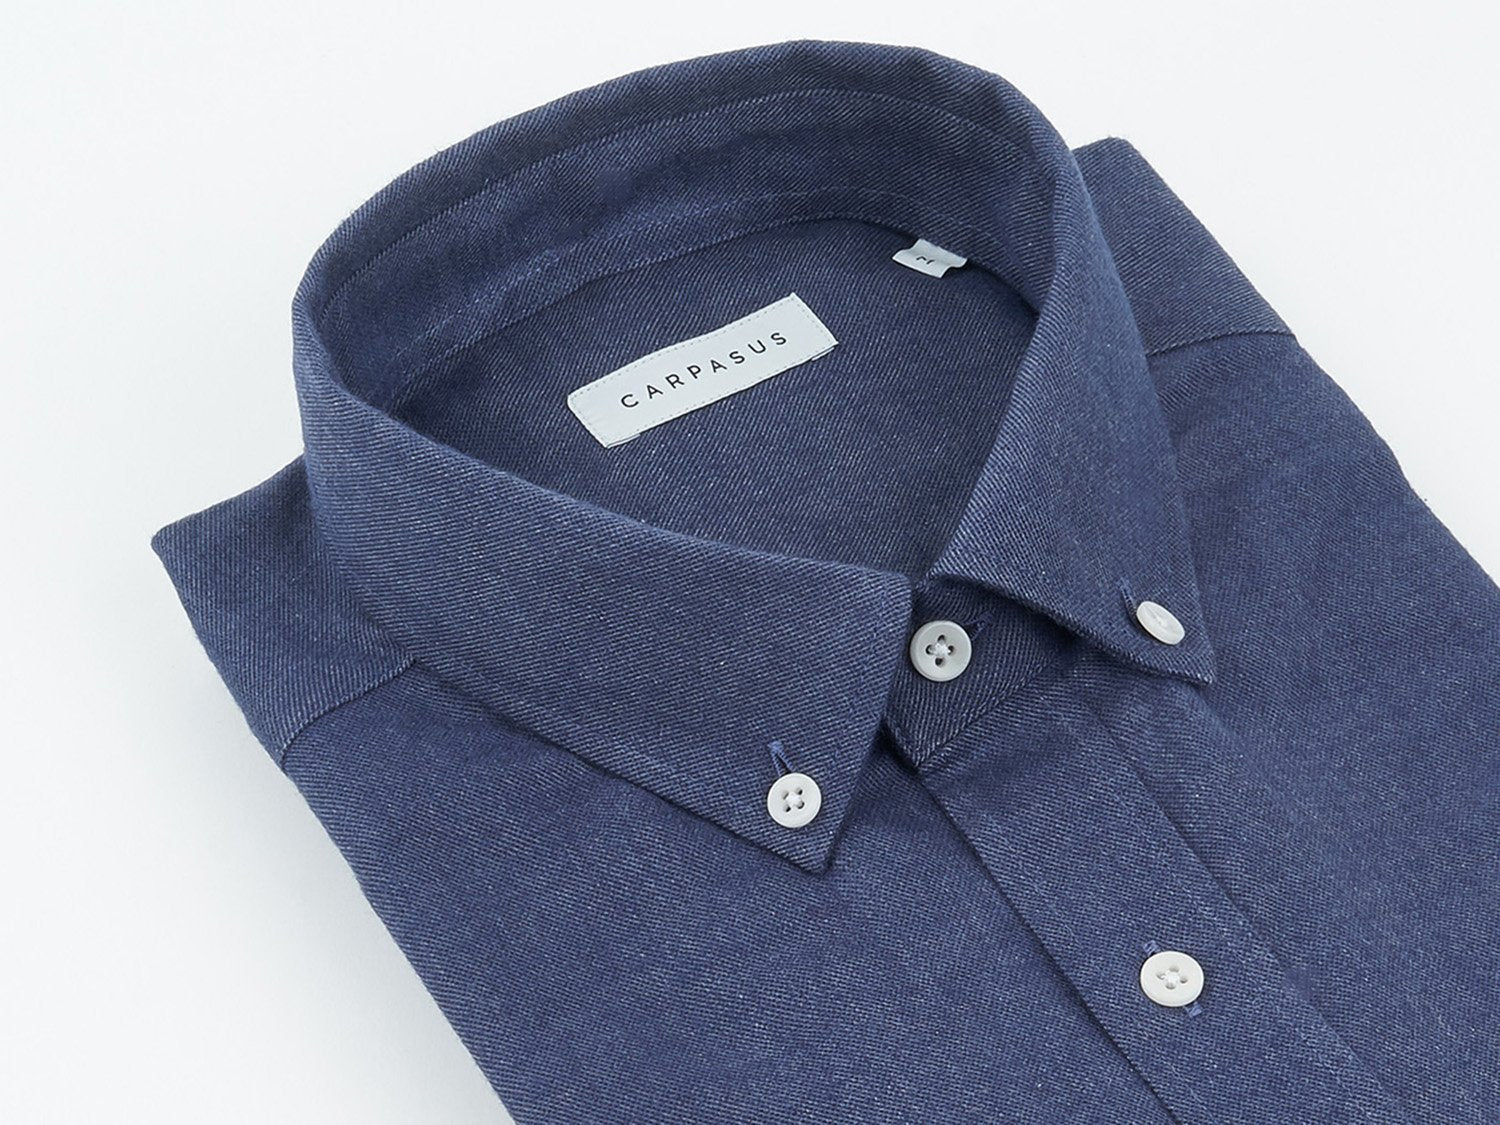 carpasus sustainable organic cotton flanell shirt populus navy. Nachhaltiges Carpasus Flanell Hemd Populus Navy aus Bio Baumwolle